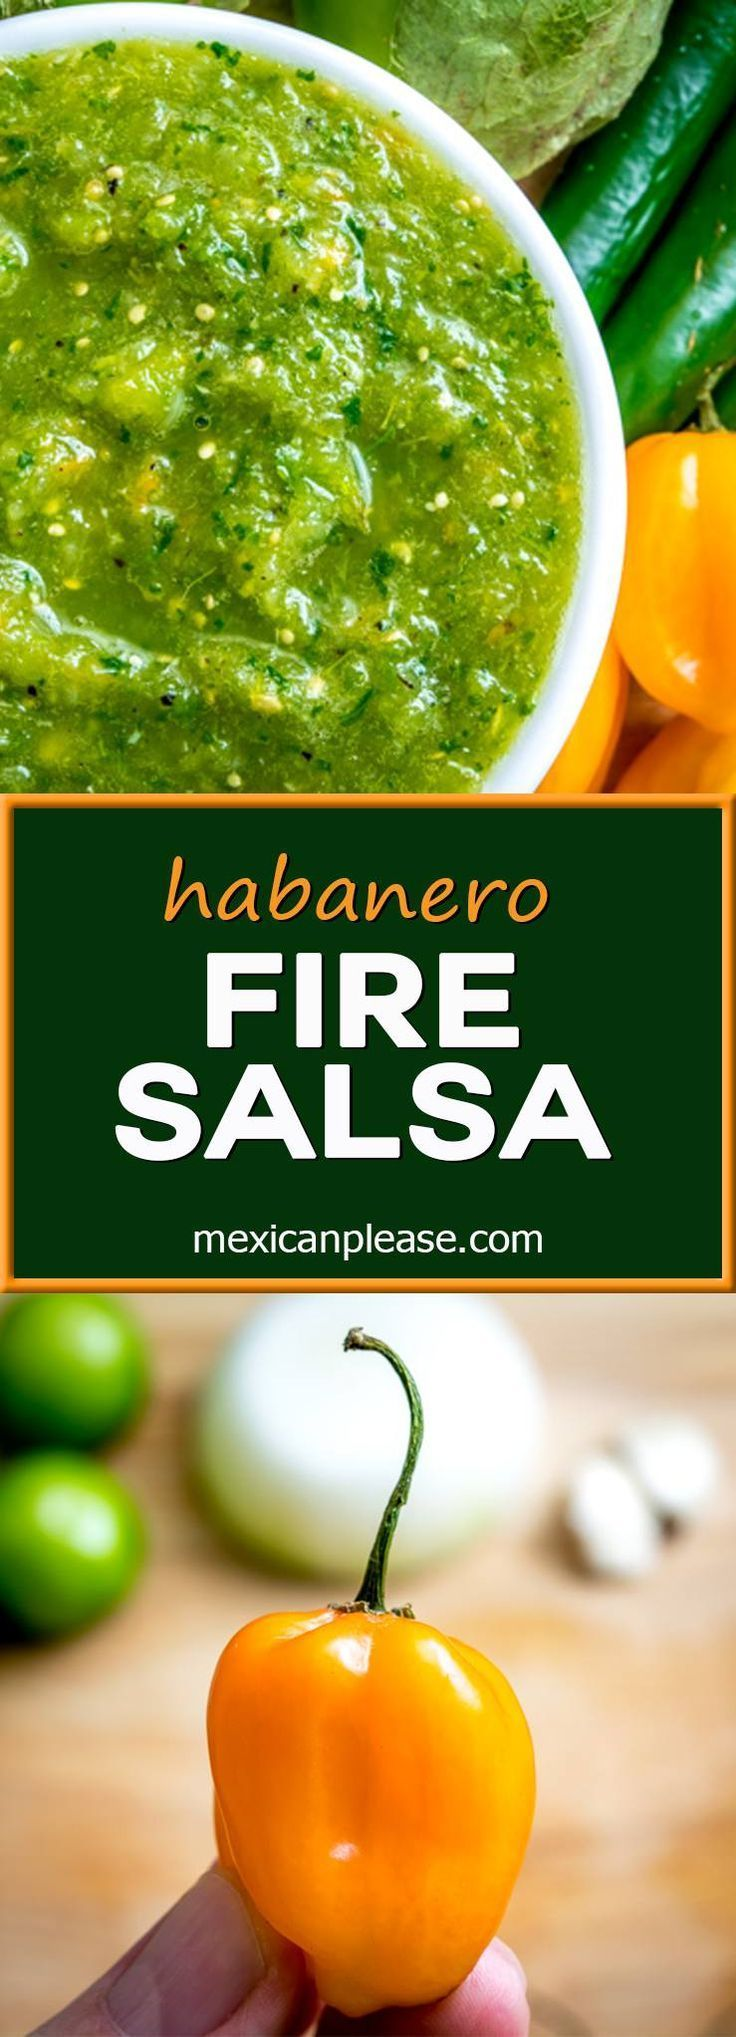 "Habanero peppers create volcanic heat in this lively green Fire Salsa.  It's the perfect reply when someone asks ""Got anything hotter?""  http://mexicanplease.com"